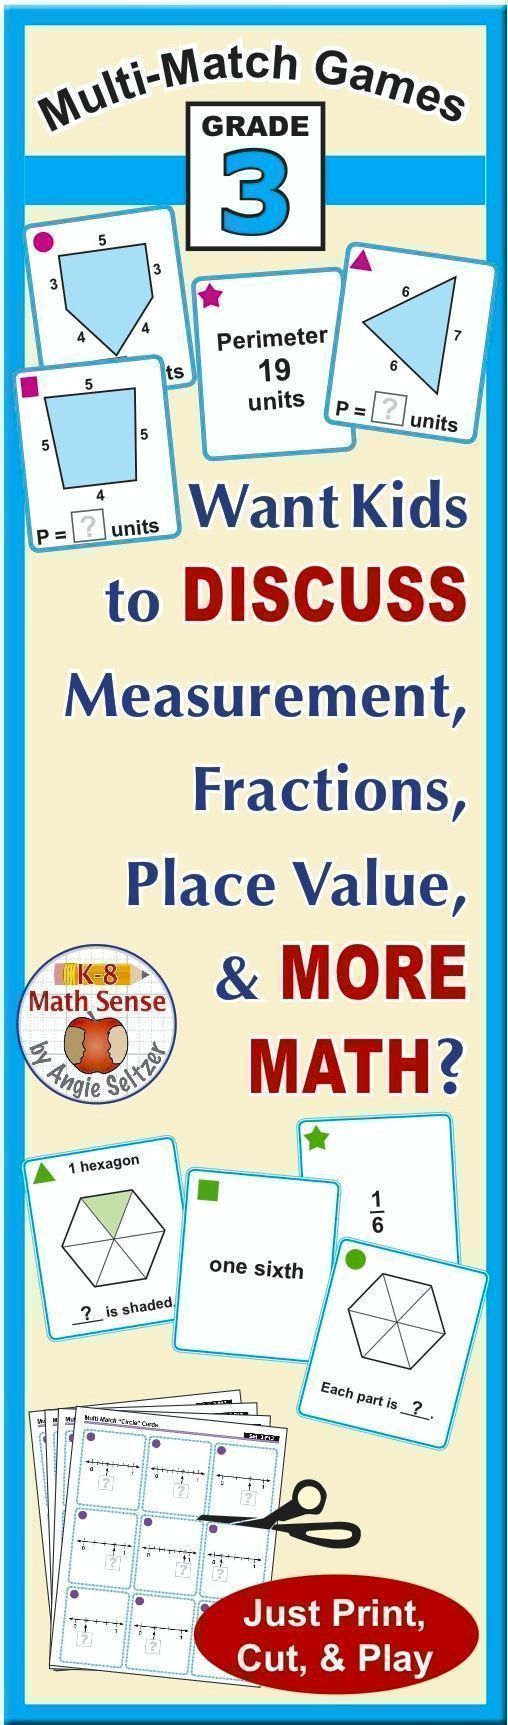 worksheet Shape Fractions best 25 fractions of shapes ideas on pinterest 3d bonus bundle grade 3 multi match math games for common core